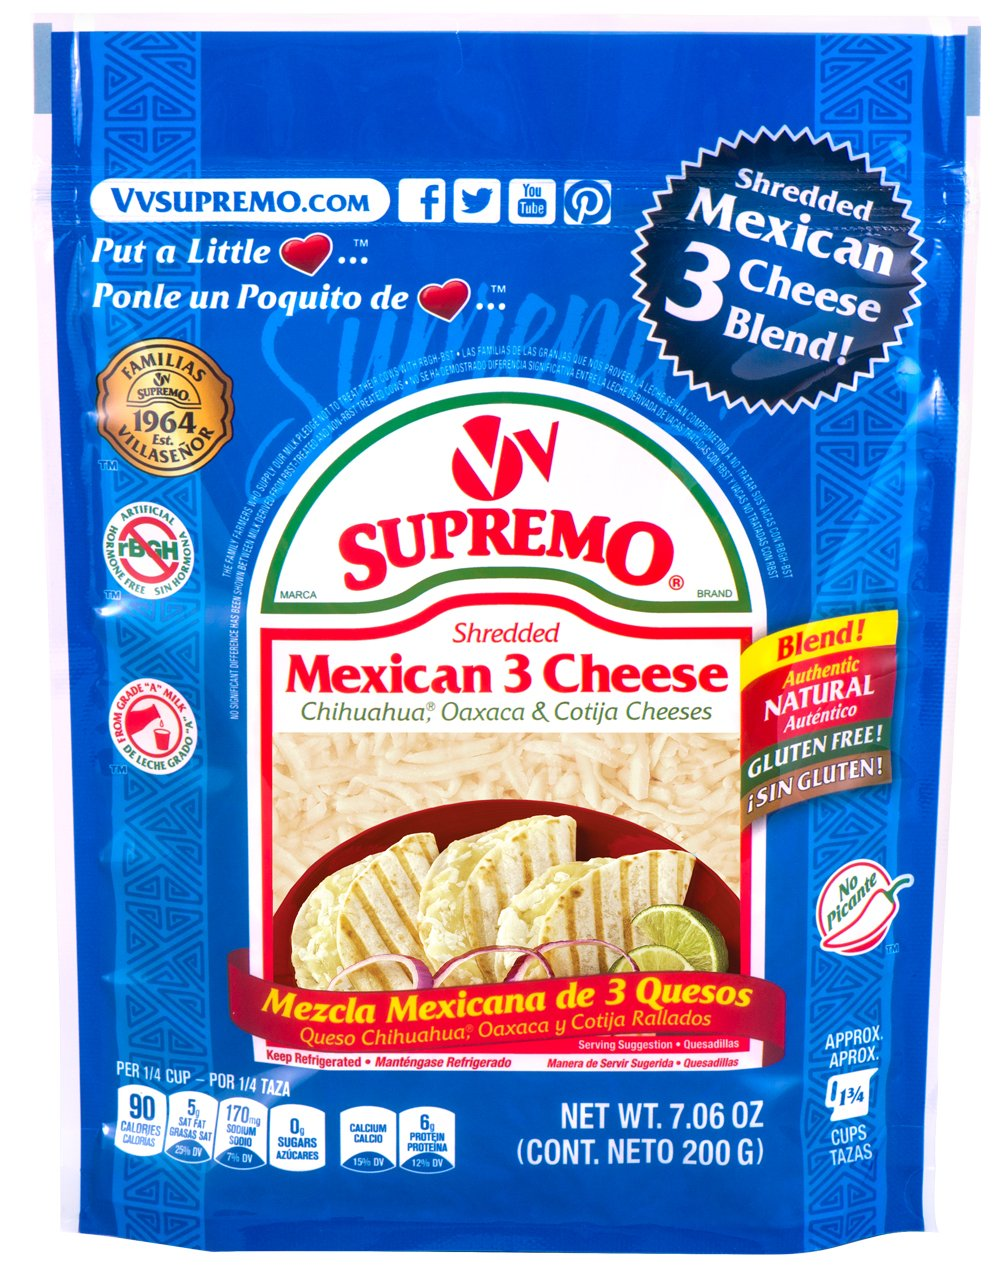 V&V Supremo, 3-Cheese Shredded Mexican Blend, 7.06 oz